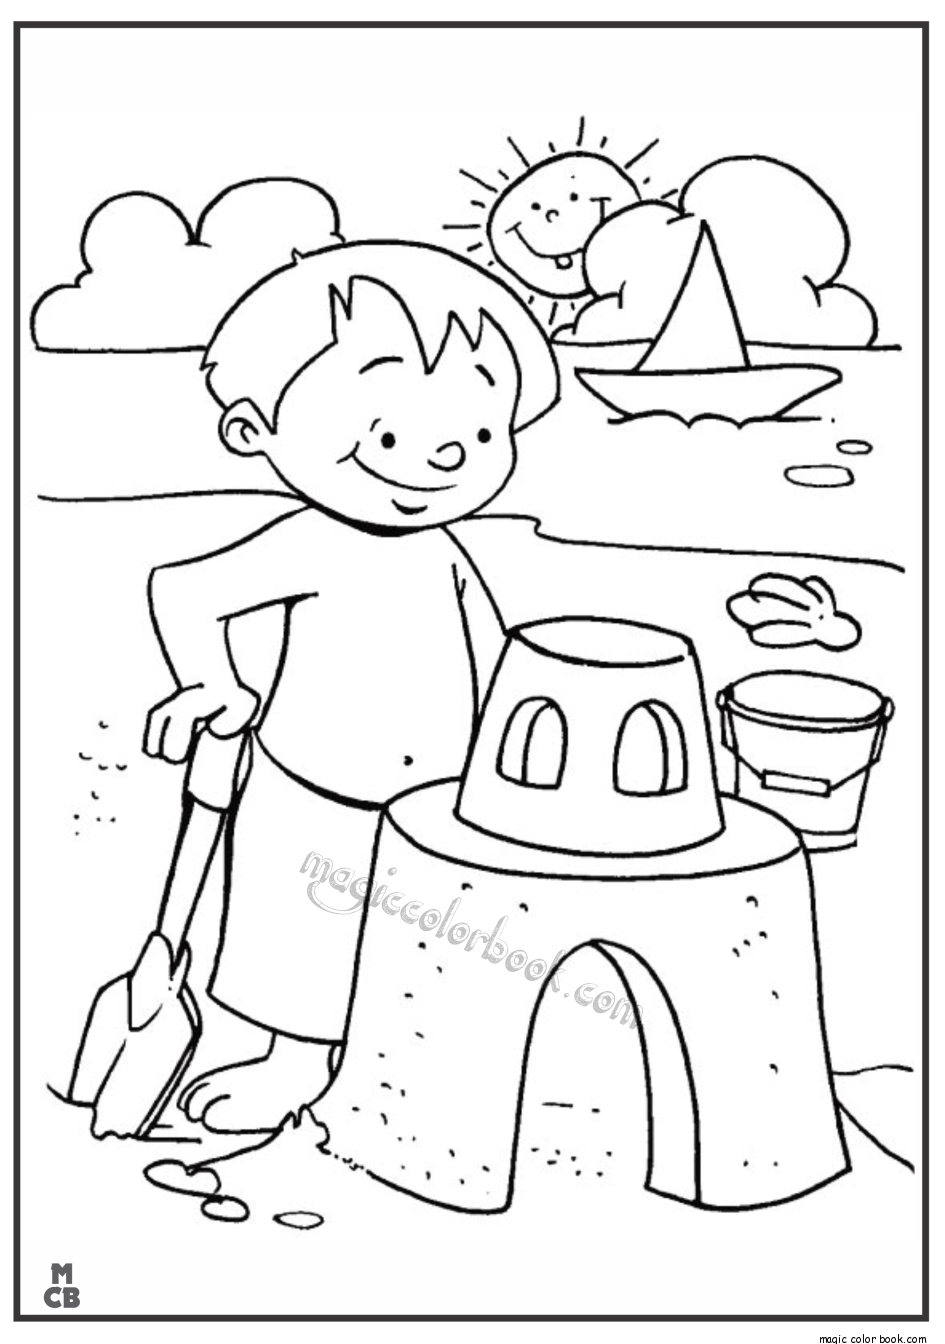 Pin By Maya Gouw On Summer Coloring Pages Free Online Summer Coloring Pages Free Coloring Pages Cool Coloring Pages